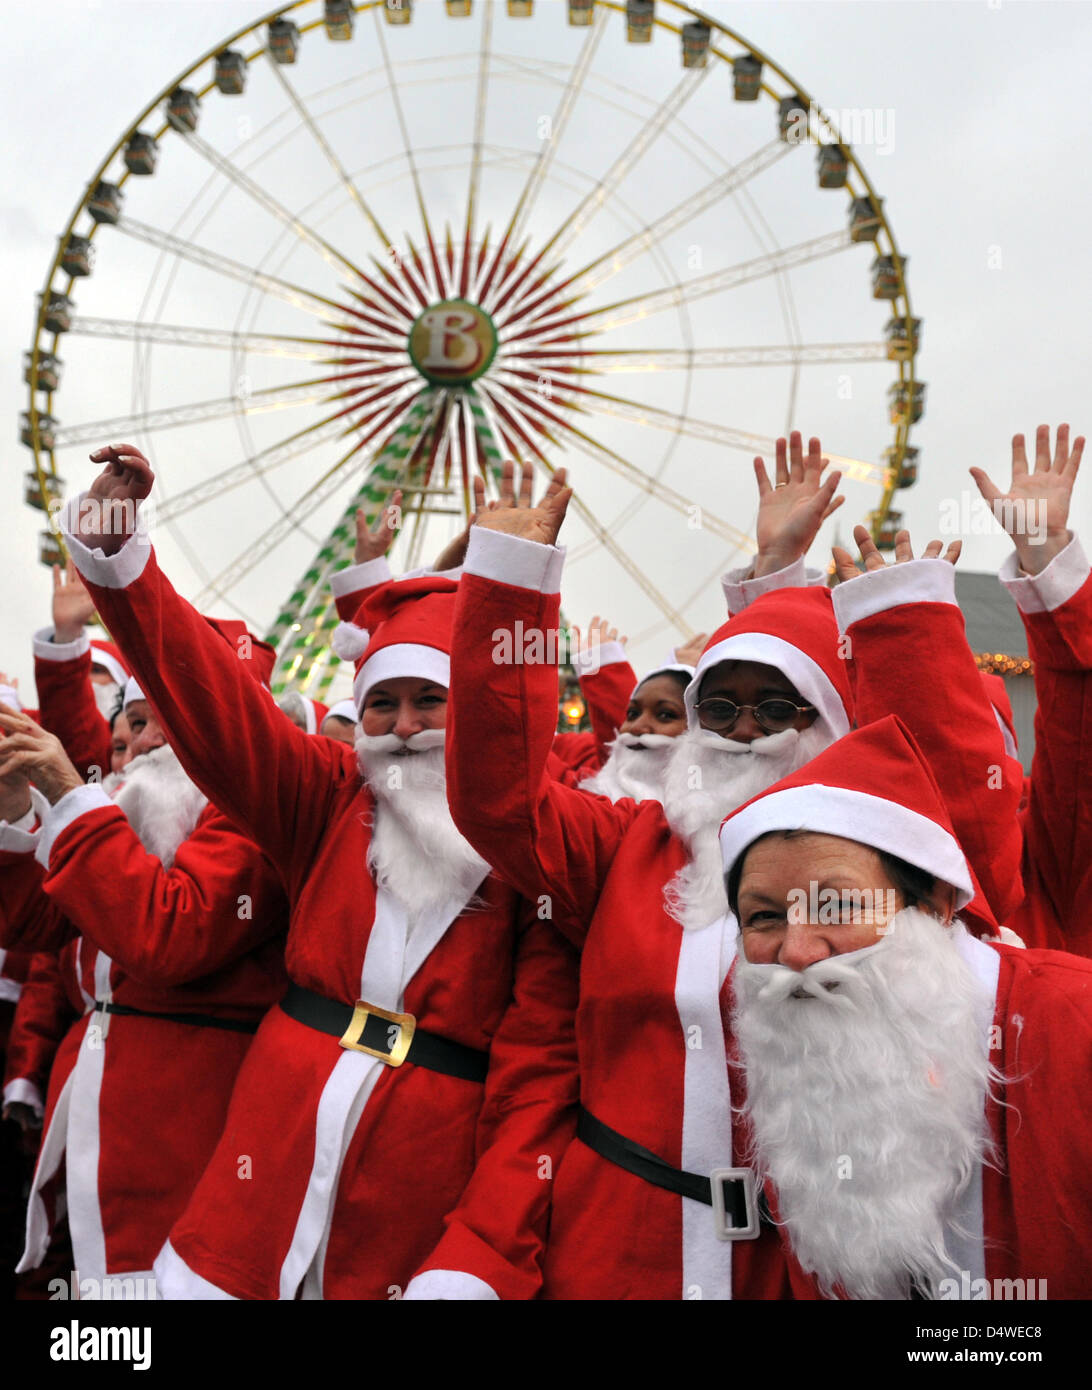 300 employees disguised as Santa Claus wave for the camera at the amusement park Europa-Park in Rust, Germany, - Stock Image